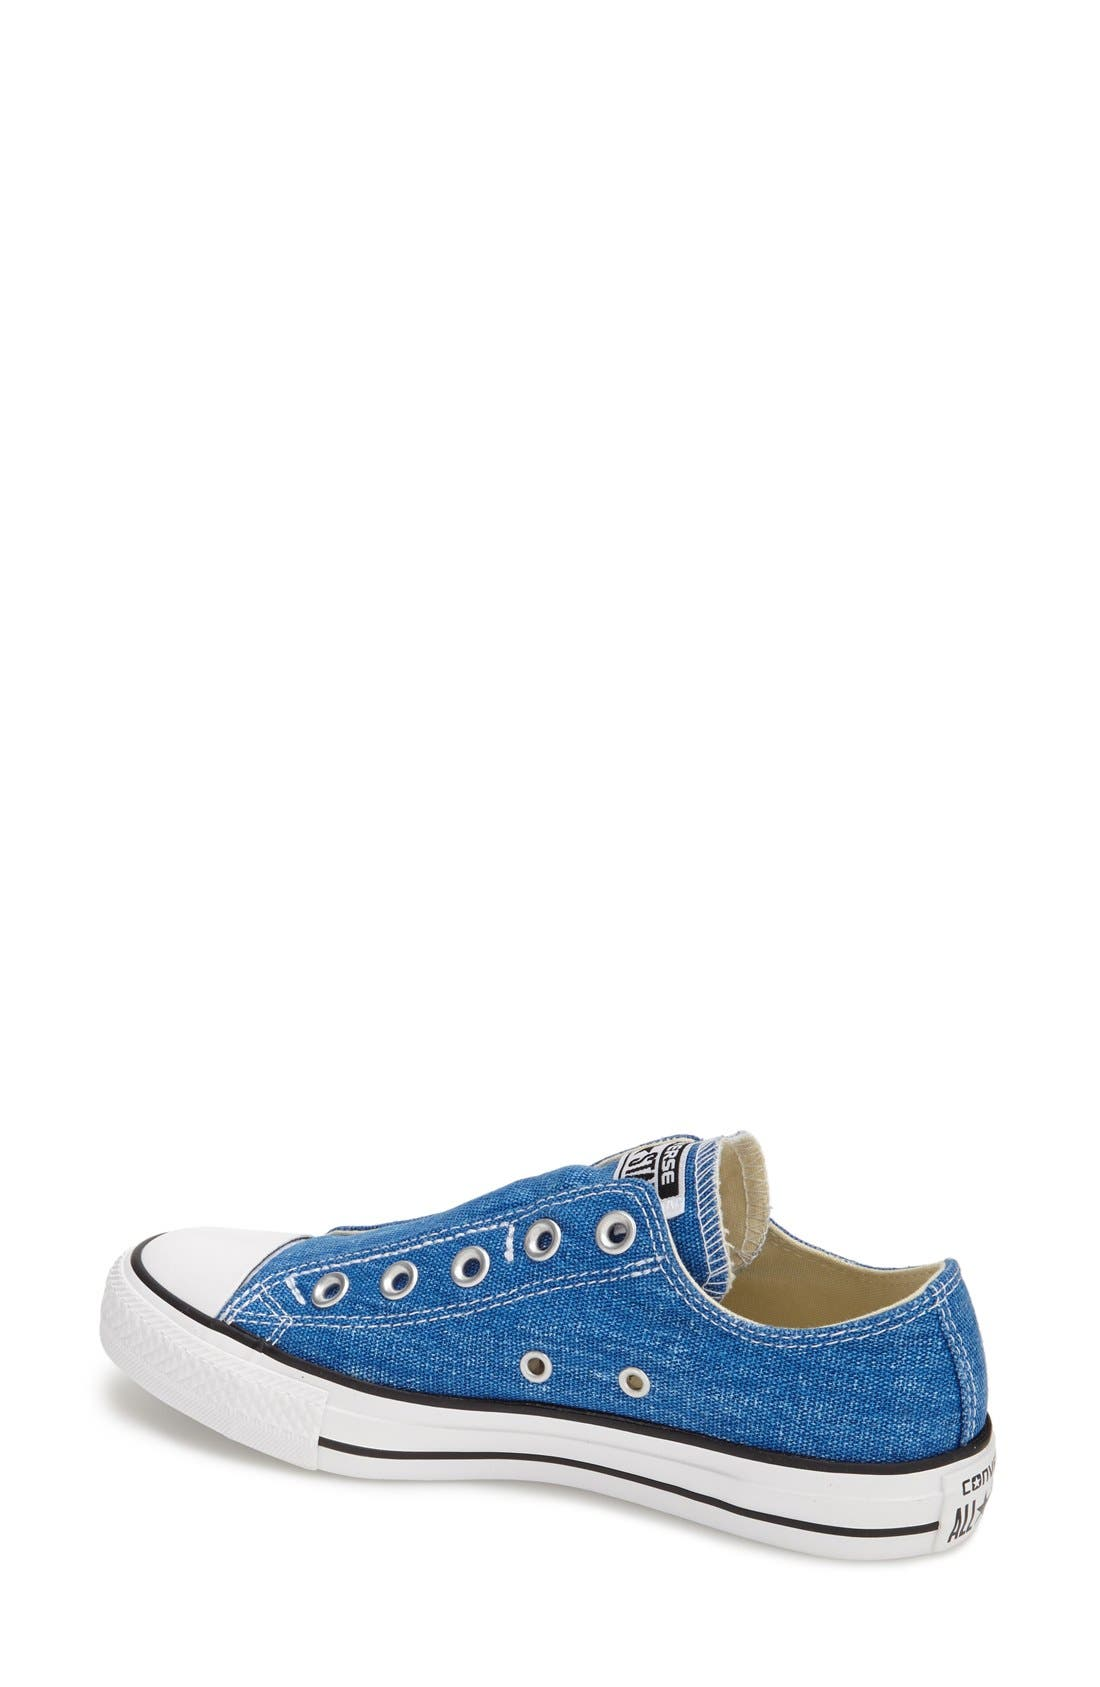 Alternate Image 2  - Converse Chuck Taylor® All Star® 'Washed' Slip-On (Women)